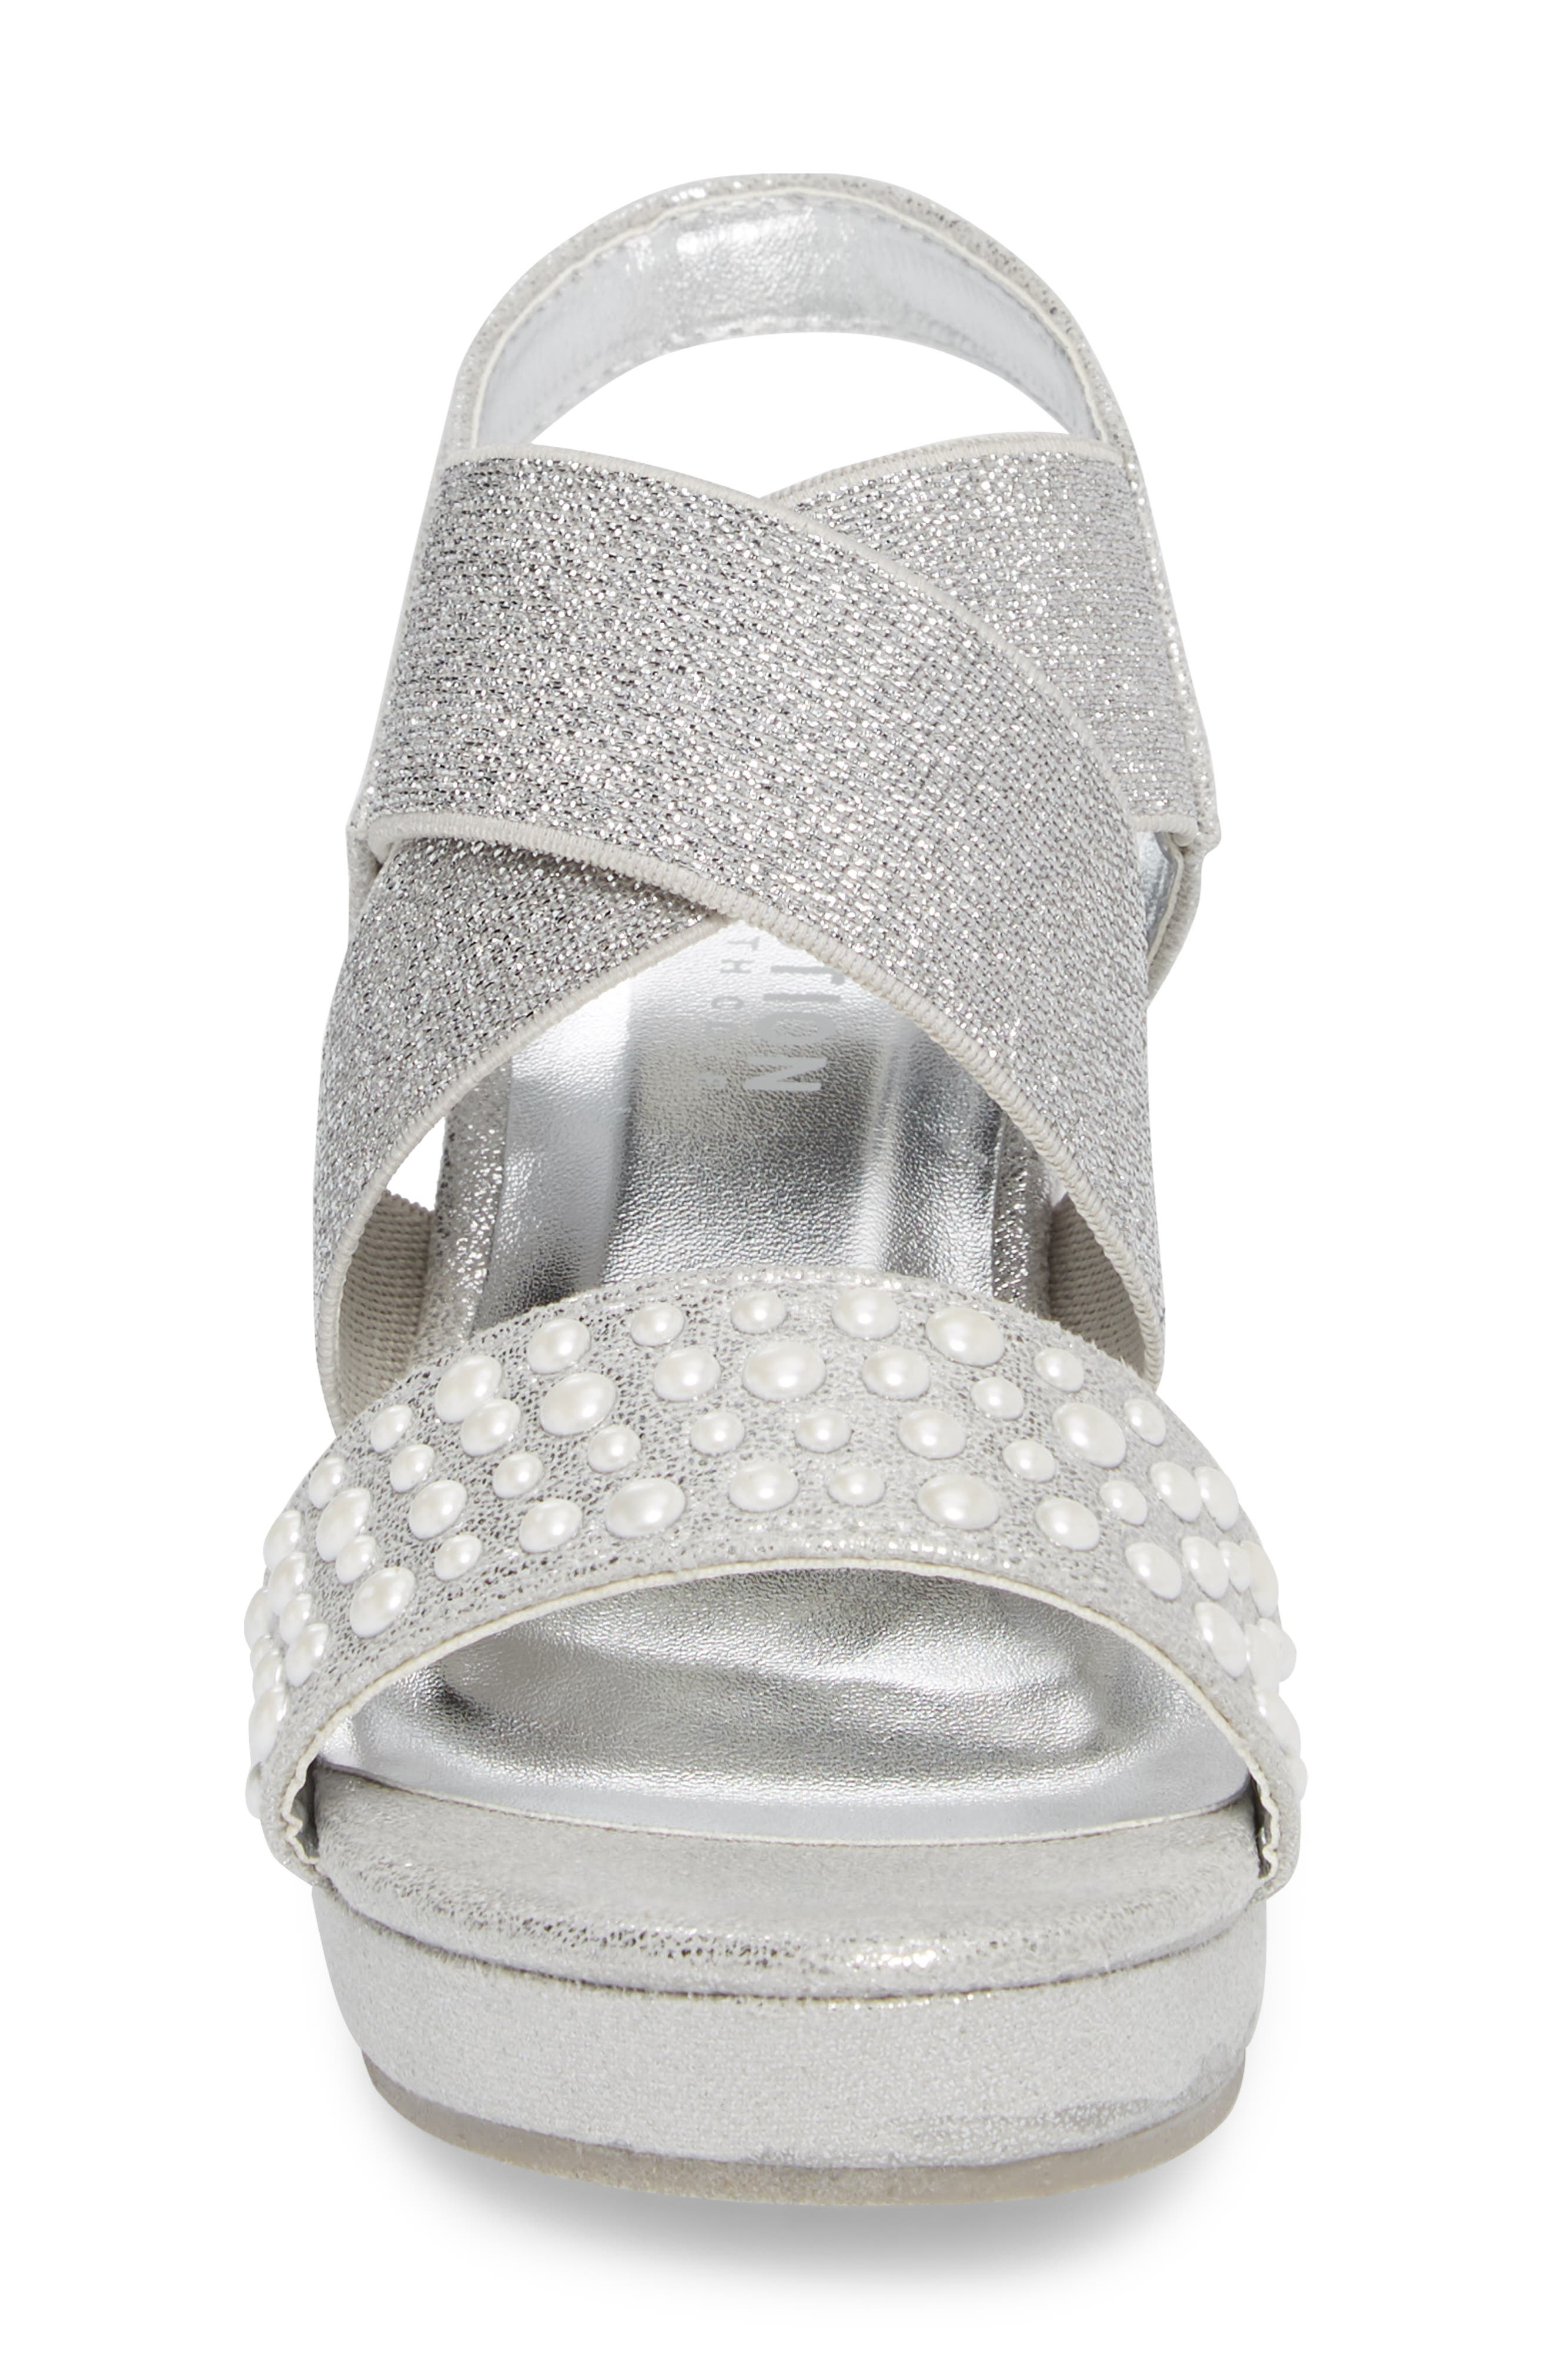 Reed Glimmer Wedge Sandal,                             Alternate thumbnail 4, color,                             044